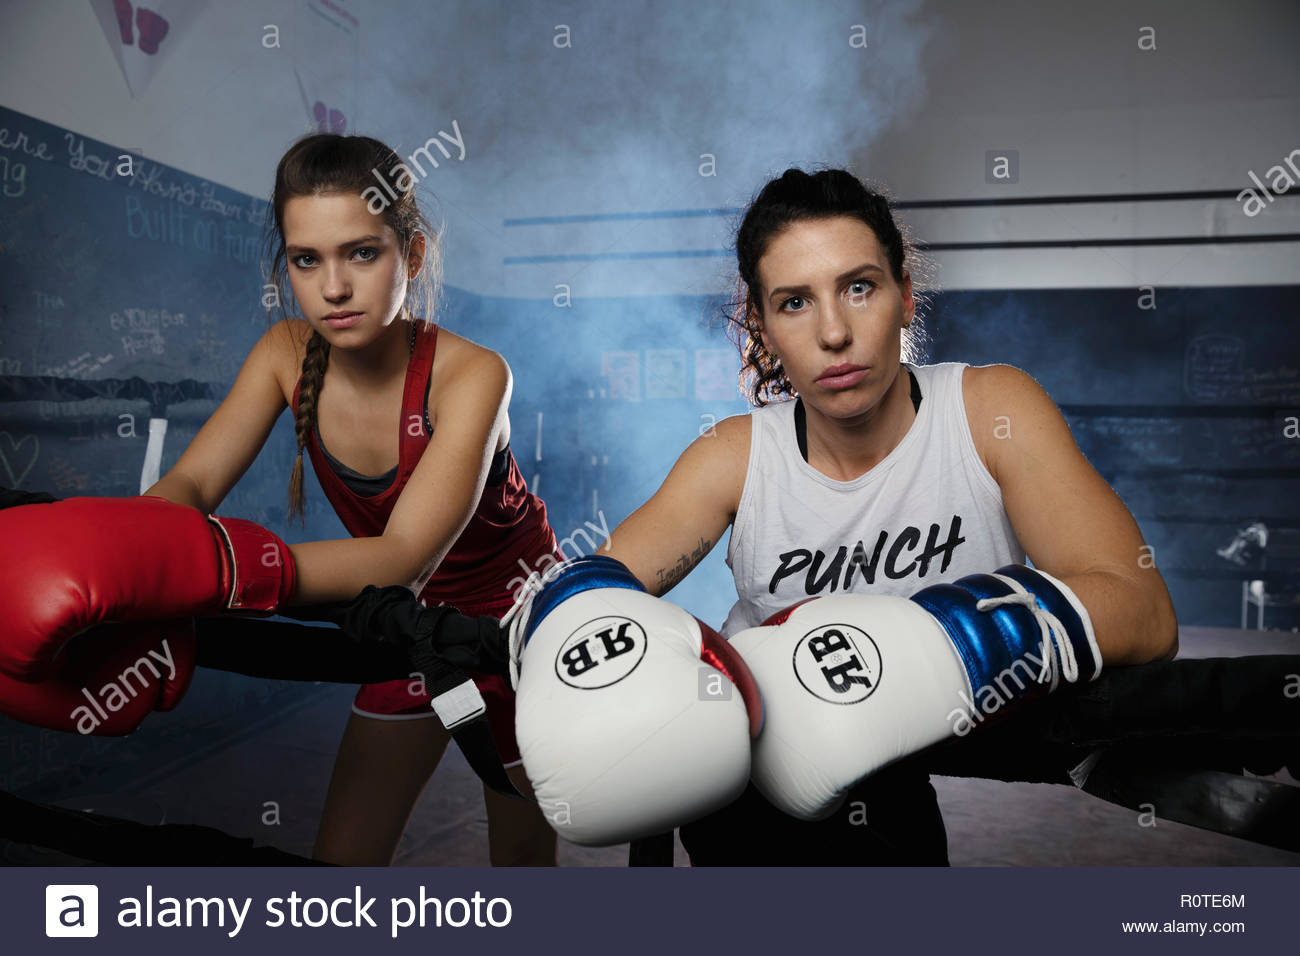 Portrait tough female boxers in boxing ring - Stock Image